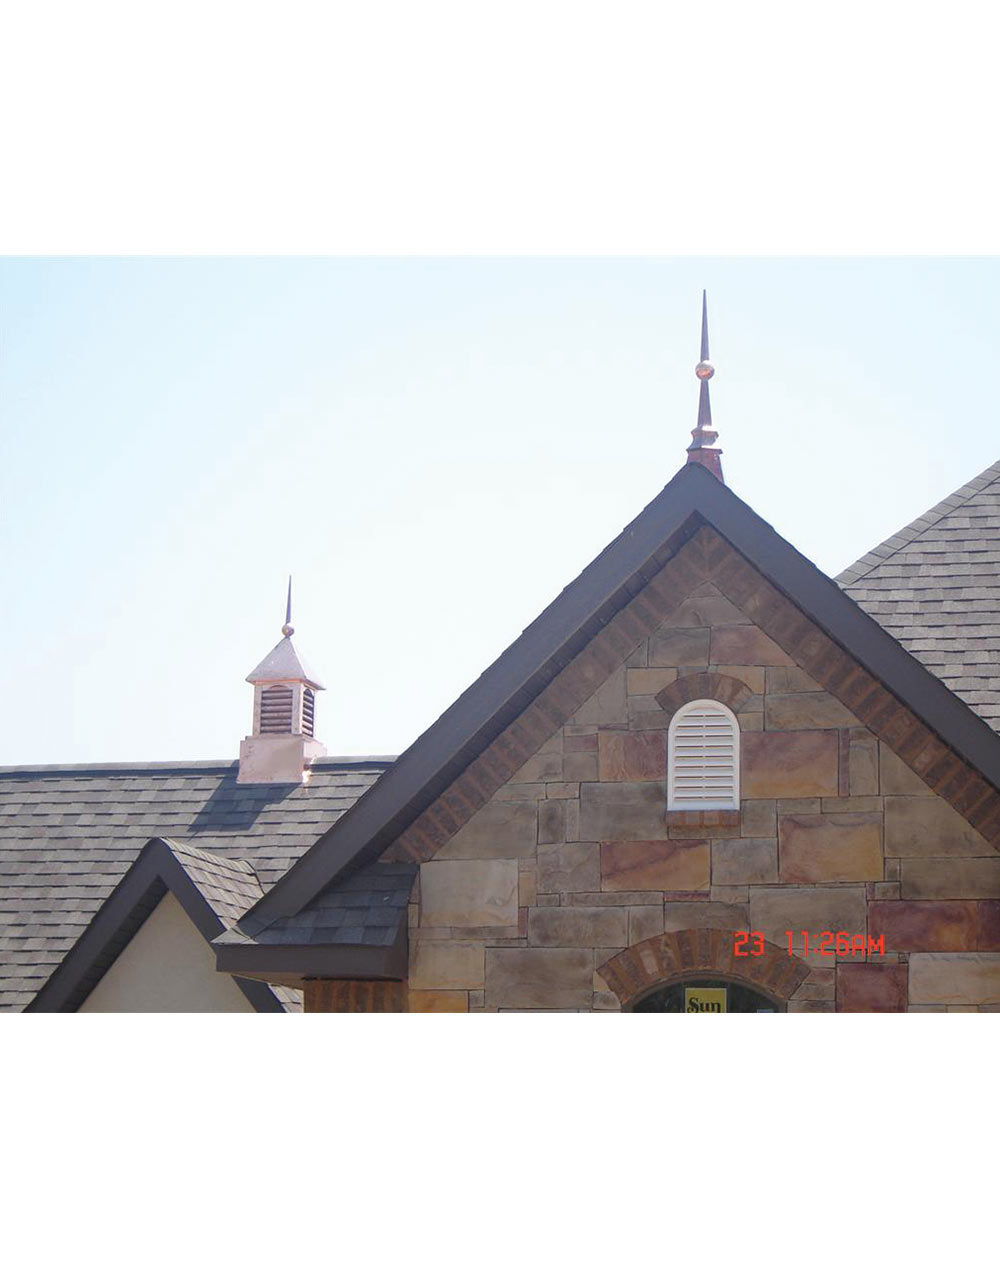 Decorative copper roofing cupola ii home of copper art for Decorative home products